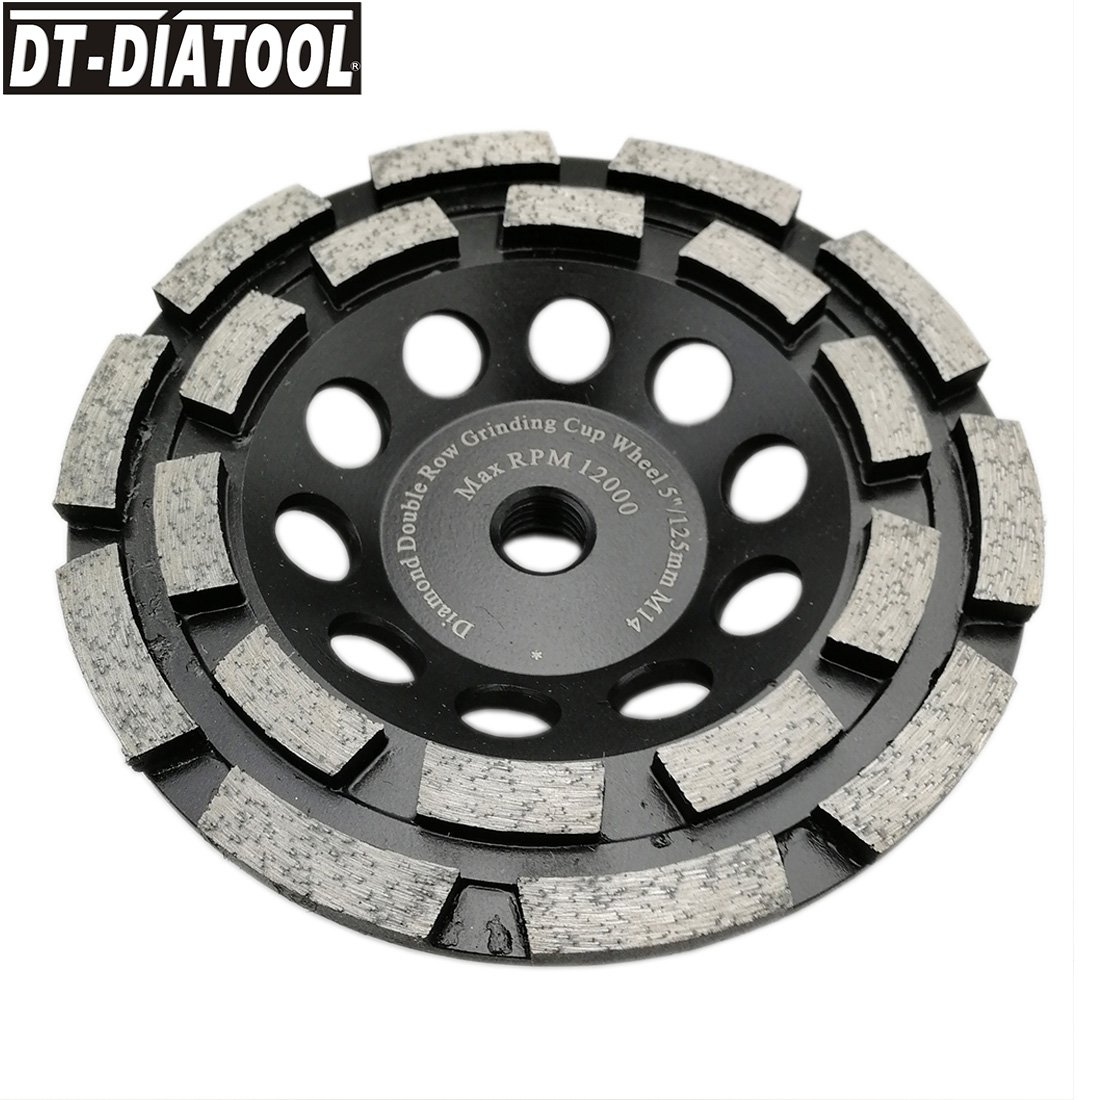 DT-DIATOOL 1piece Premium Diamond Double Row Cup Grinding Wheel for Concrete hard stone granite Dia 125mm/5inch M14 connection dt diatool 2pcs dia 7 double row diamond grinding cup wheel with 5 8 11 thread for concrete hard stone granite dia 7inch 180mm